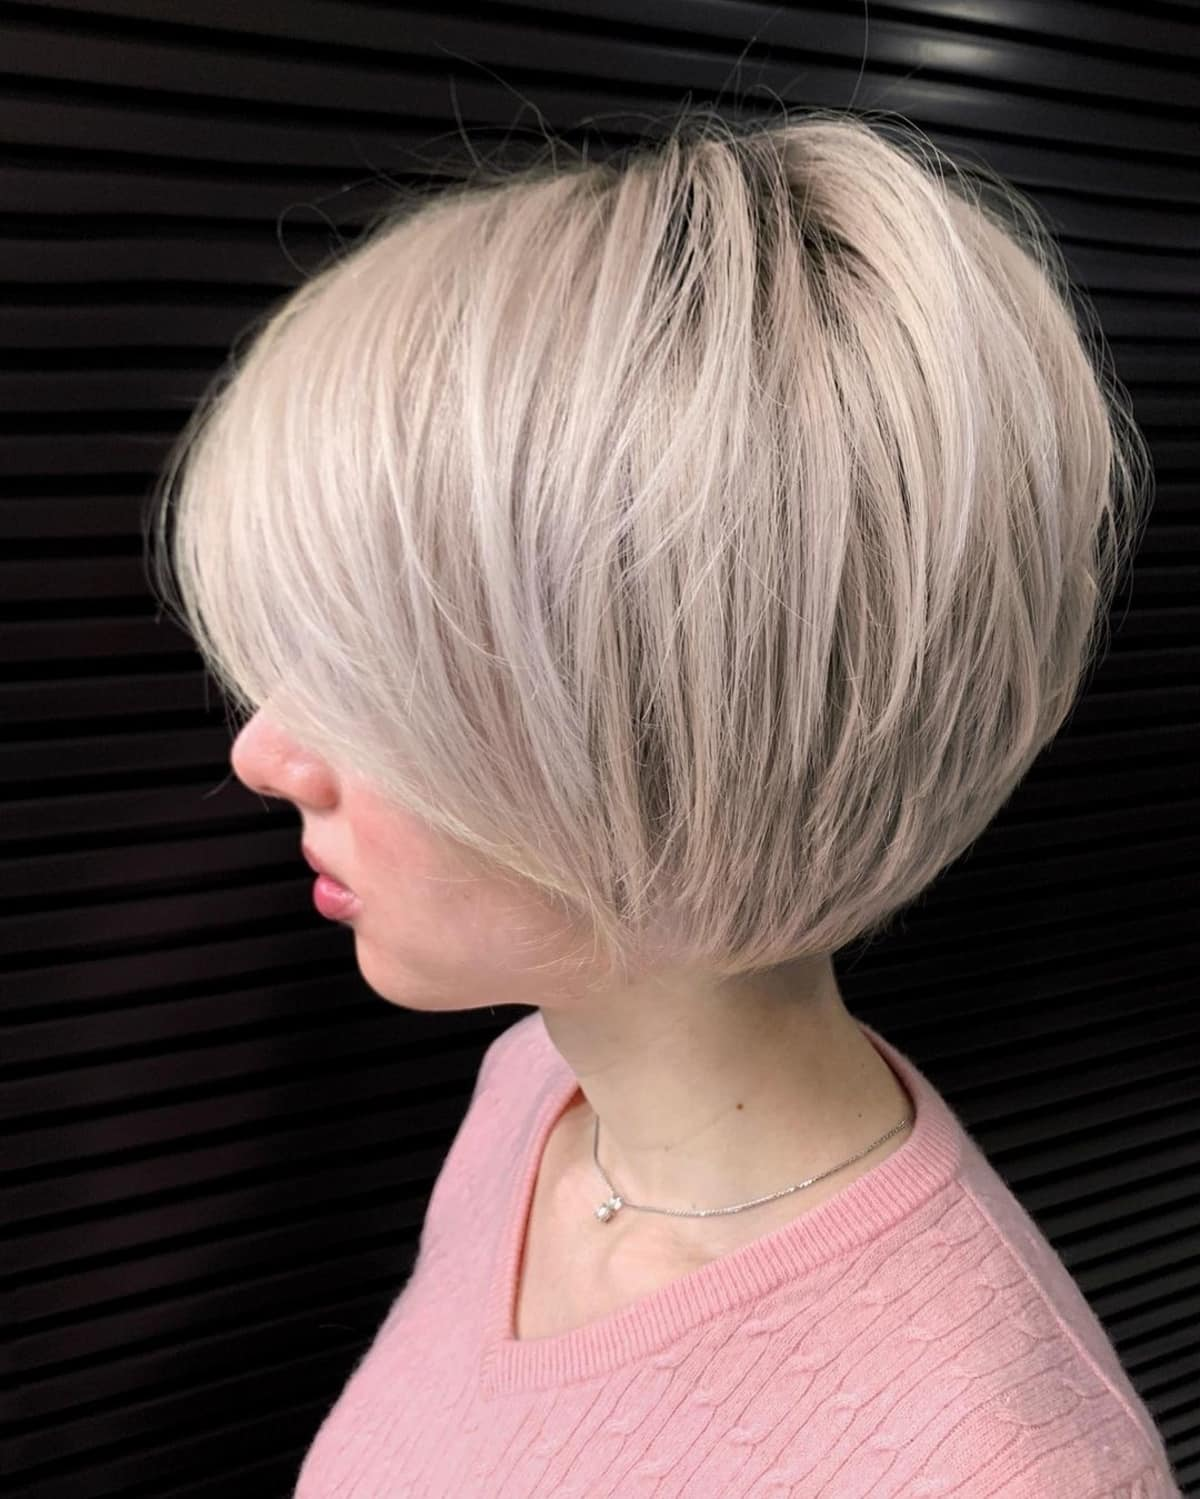 17 Stacked Inverted Bob Haircuts for Stylish, Edgy Girls